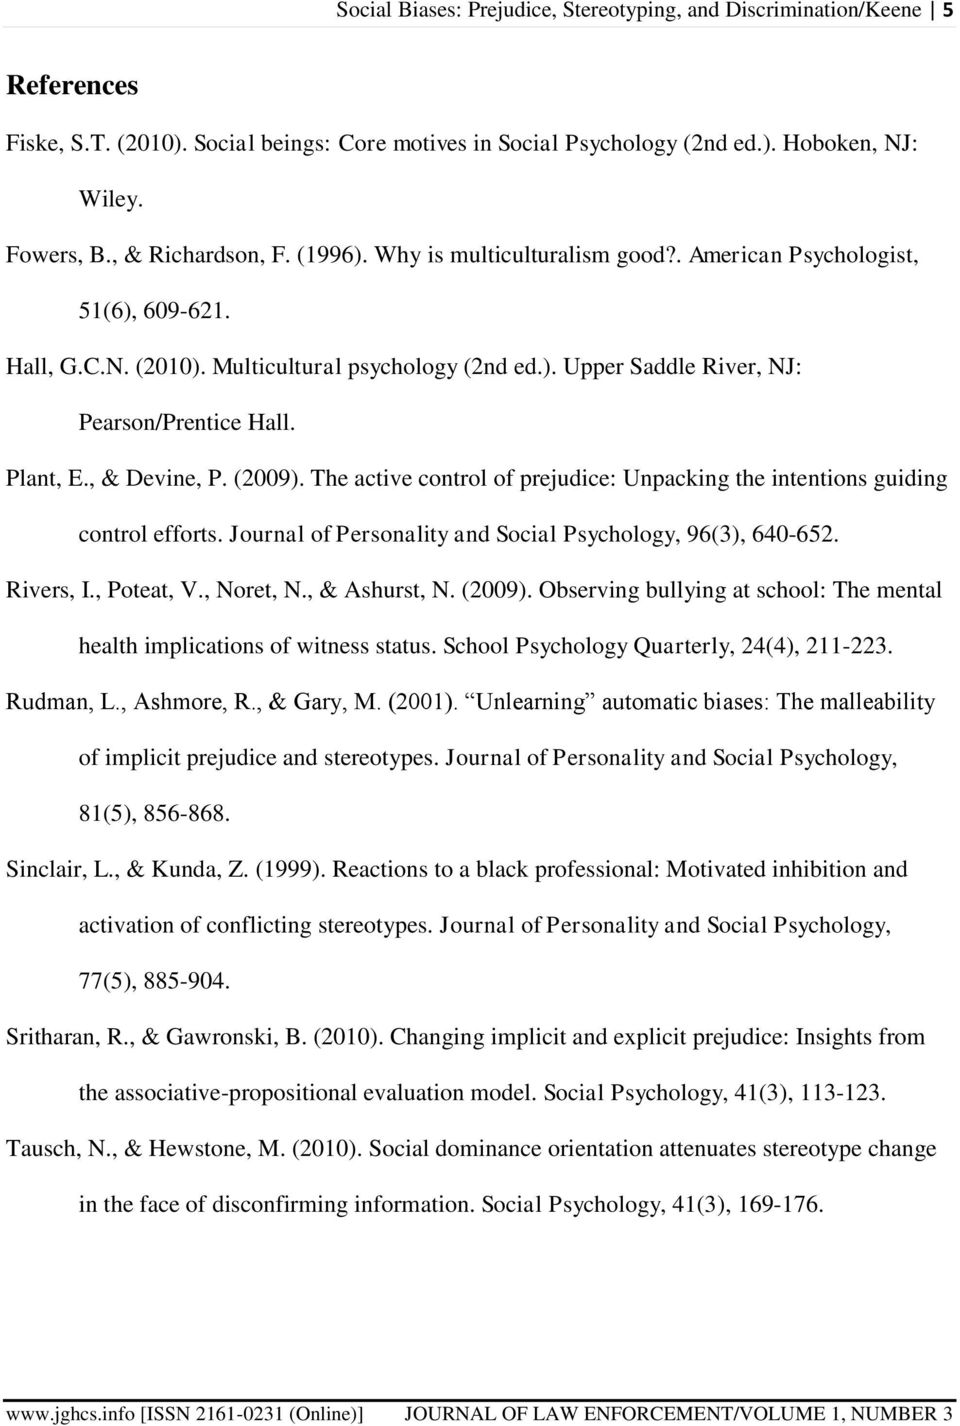 Plant, E., & Devine, P. (2009). The active control of prejudice: Unpacking the intentions guiding control efforts. Journal of Personality and Social Psychology, 96(3), 640-652. Rivers, I., Poteat, V.